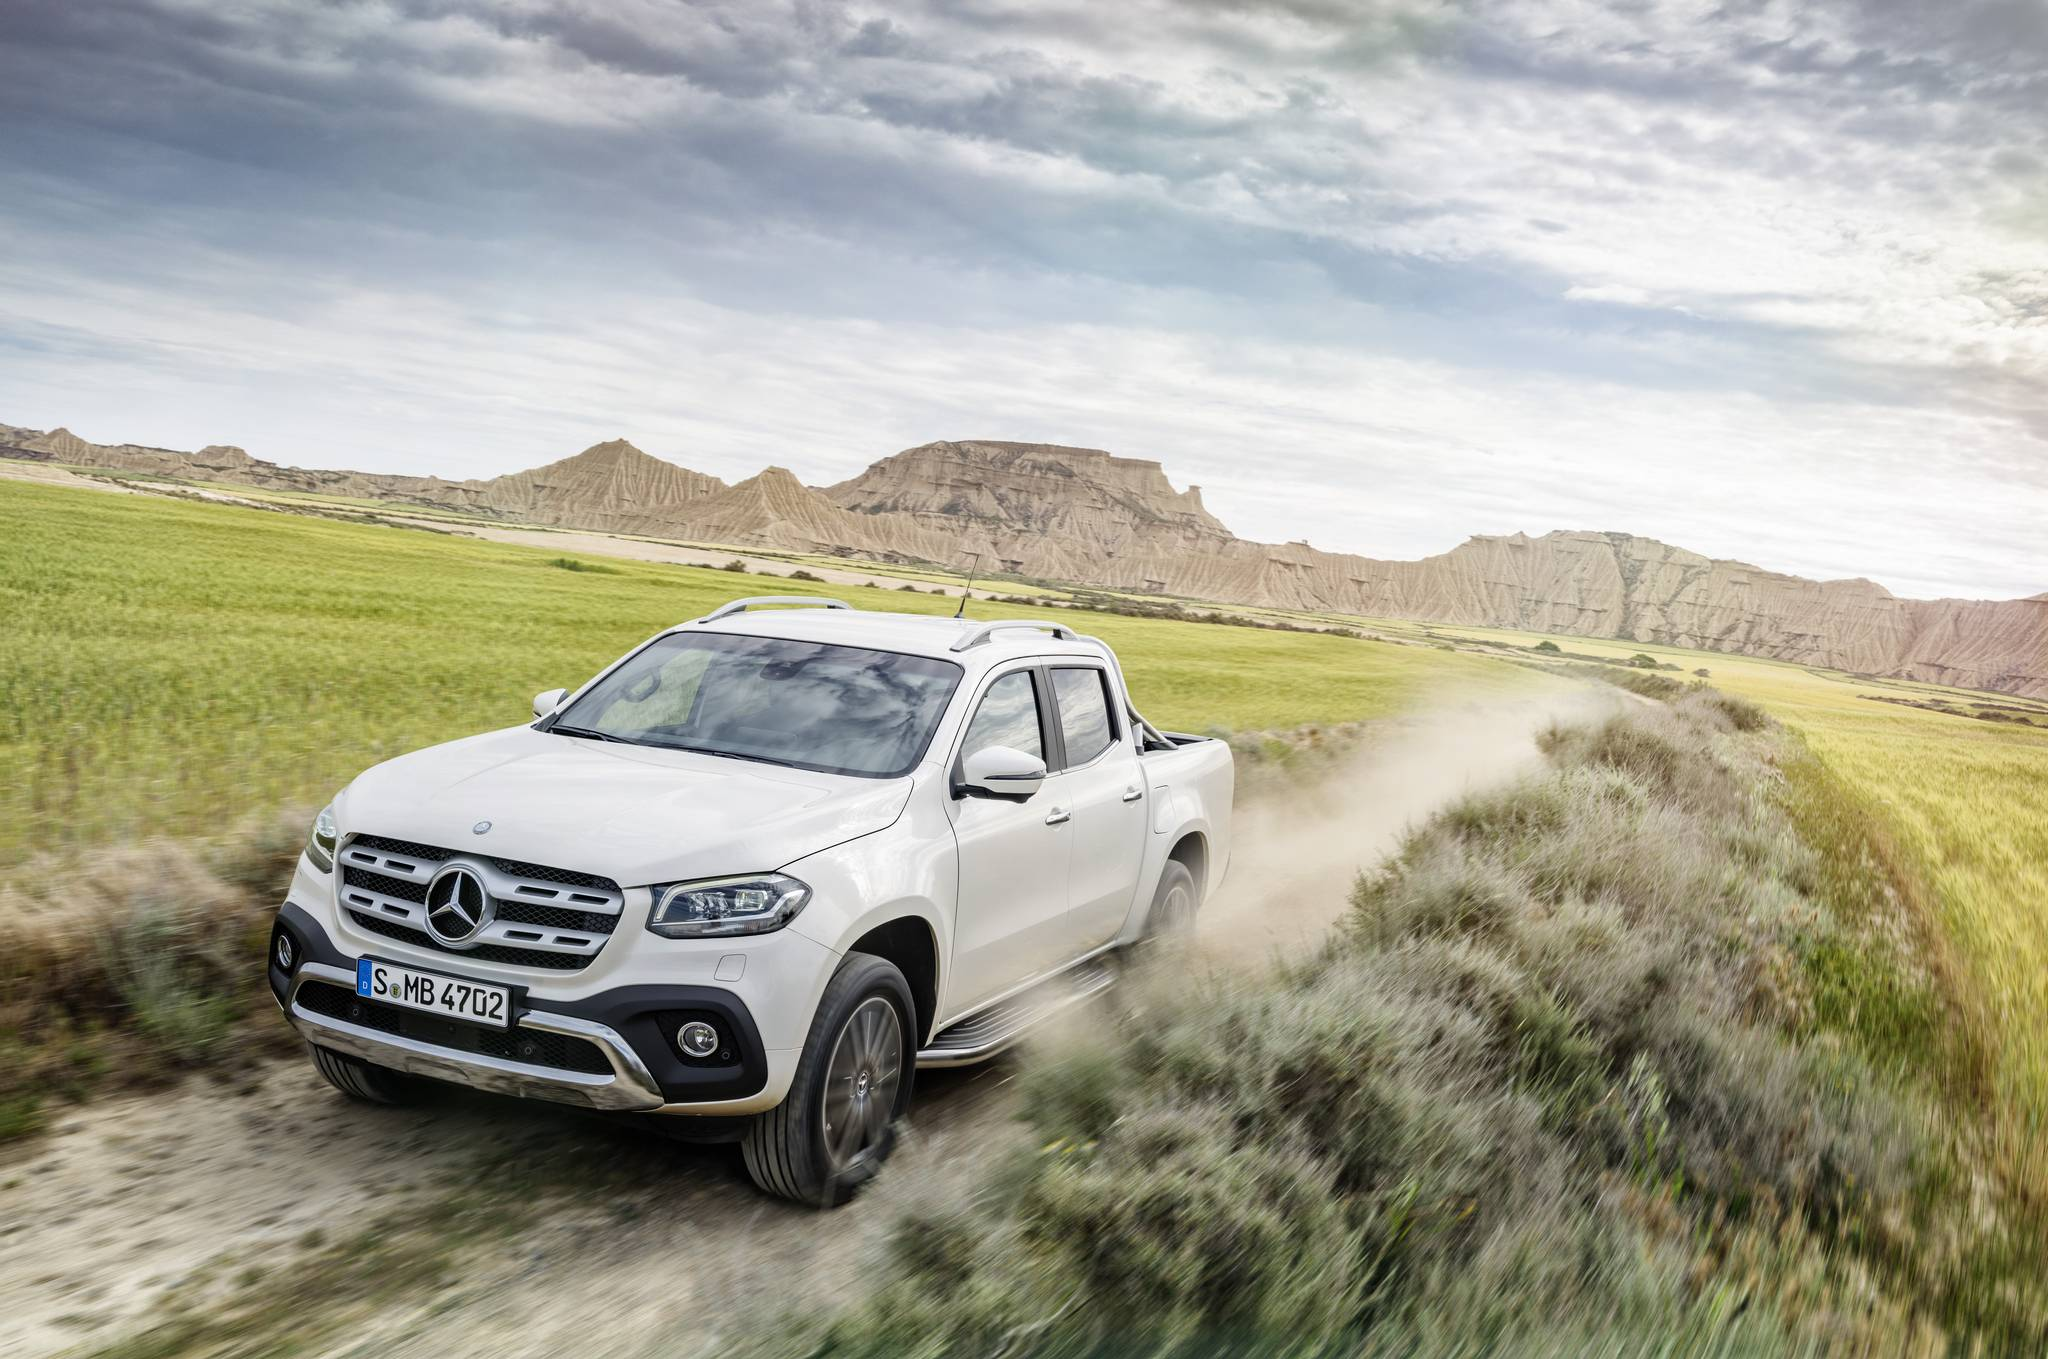 2018 mercedes benz x class first impression gtspirit for Mercedes benz 07